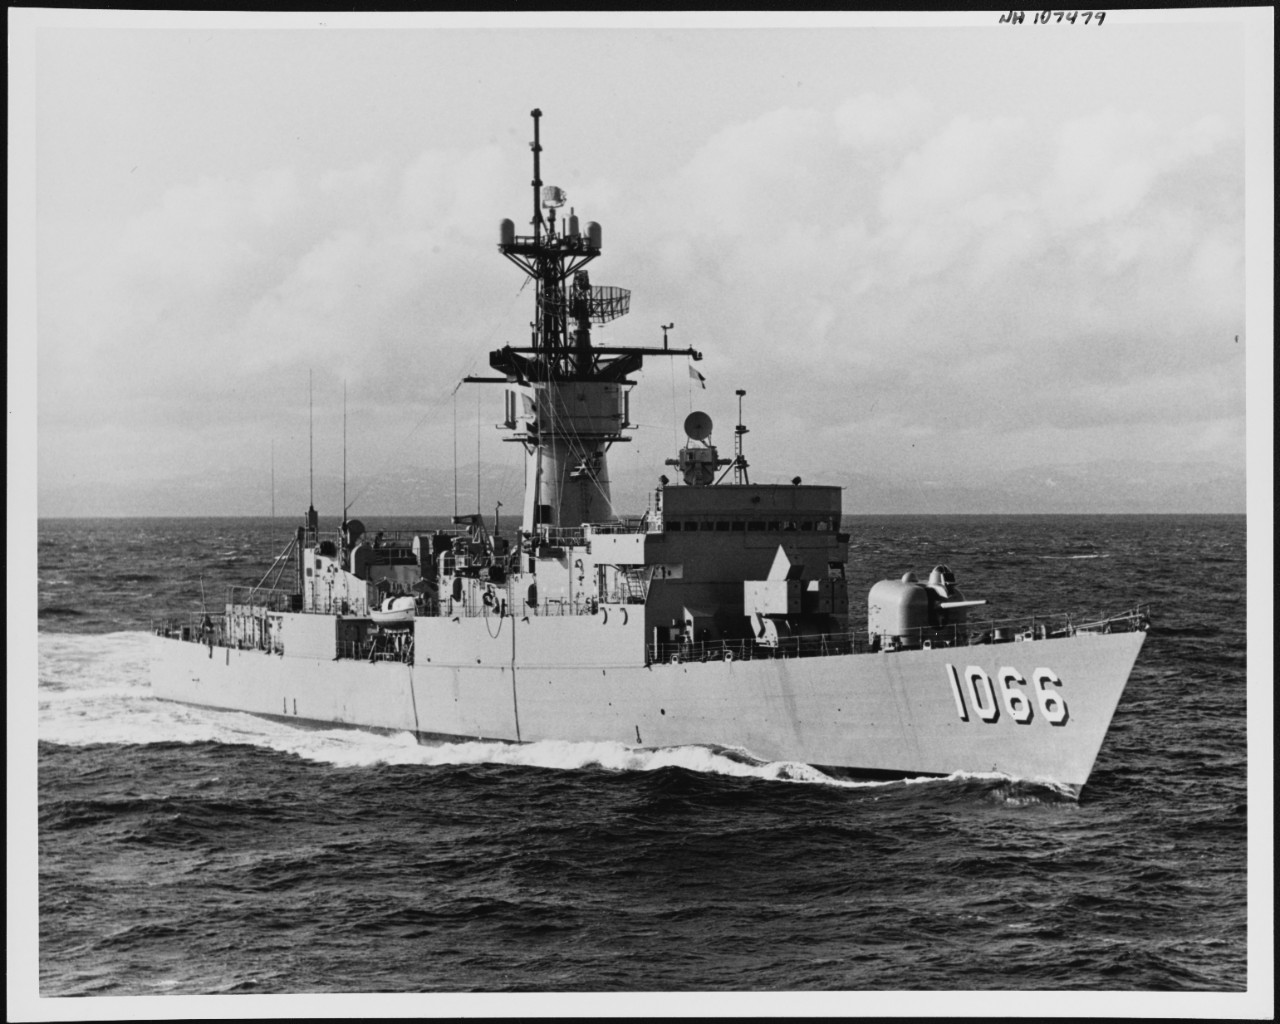 Photo #: NH 107479  USS Marvin Shields